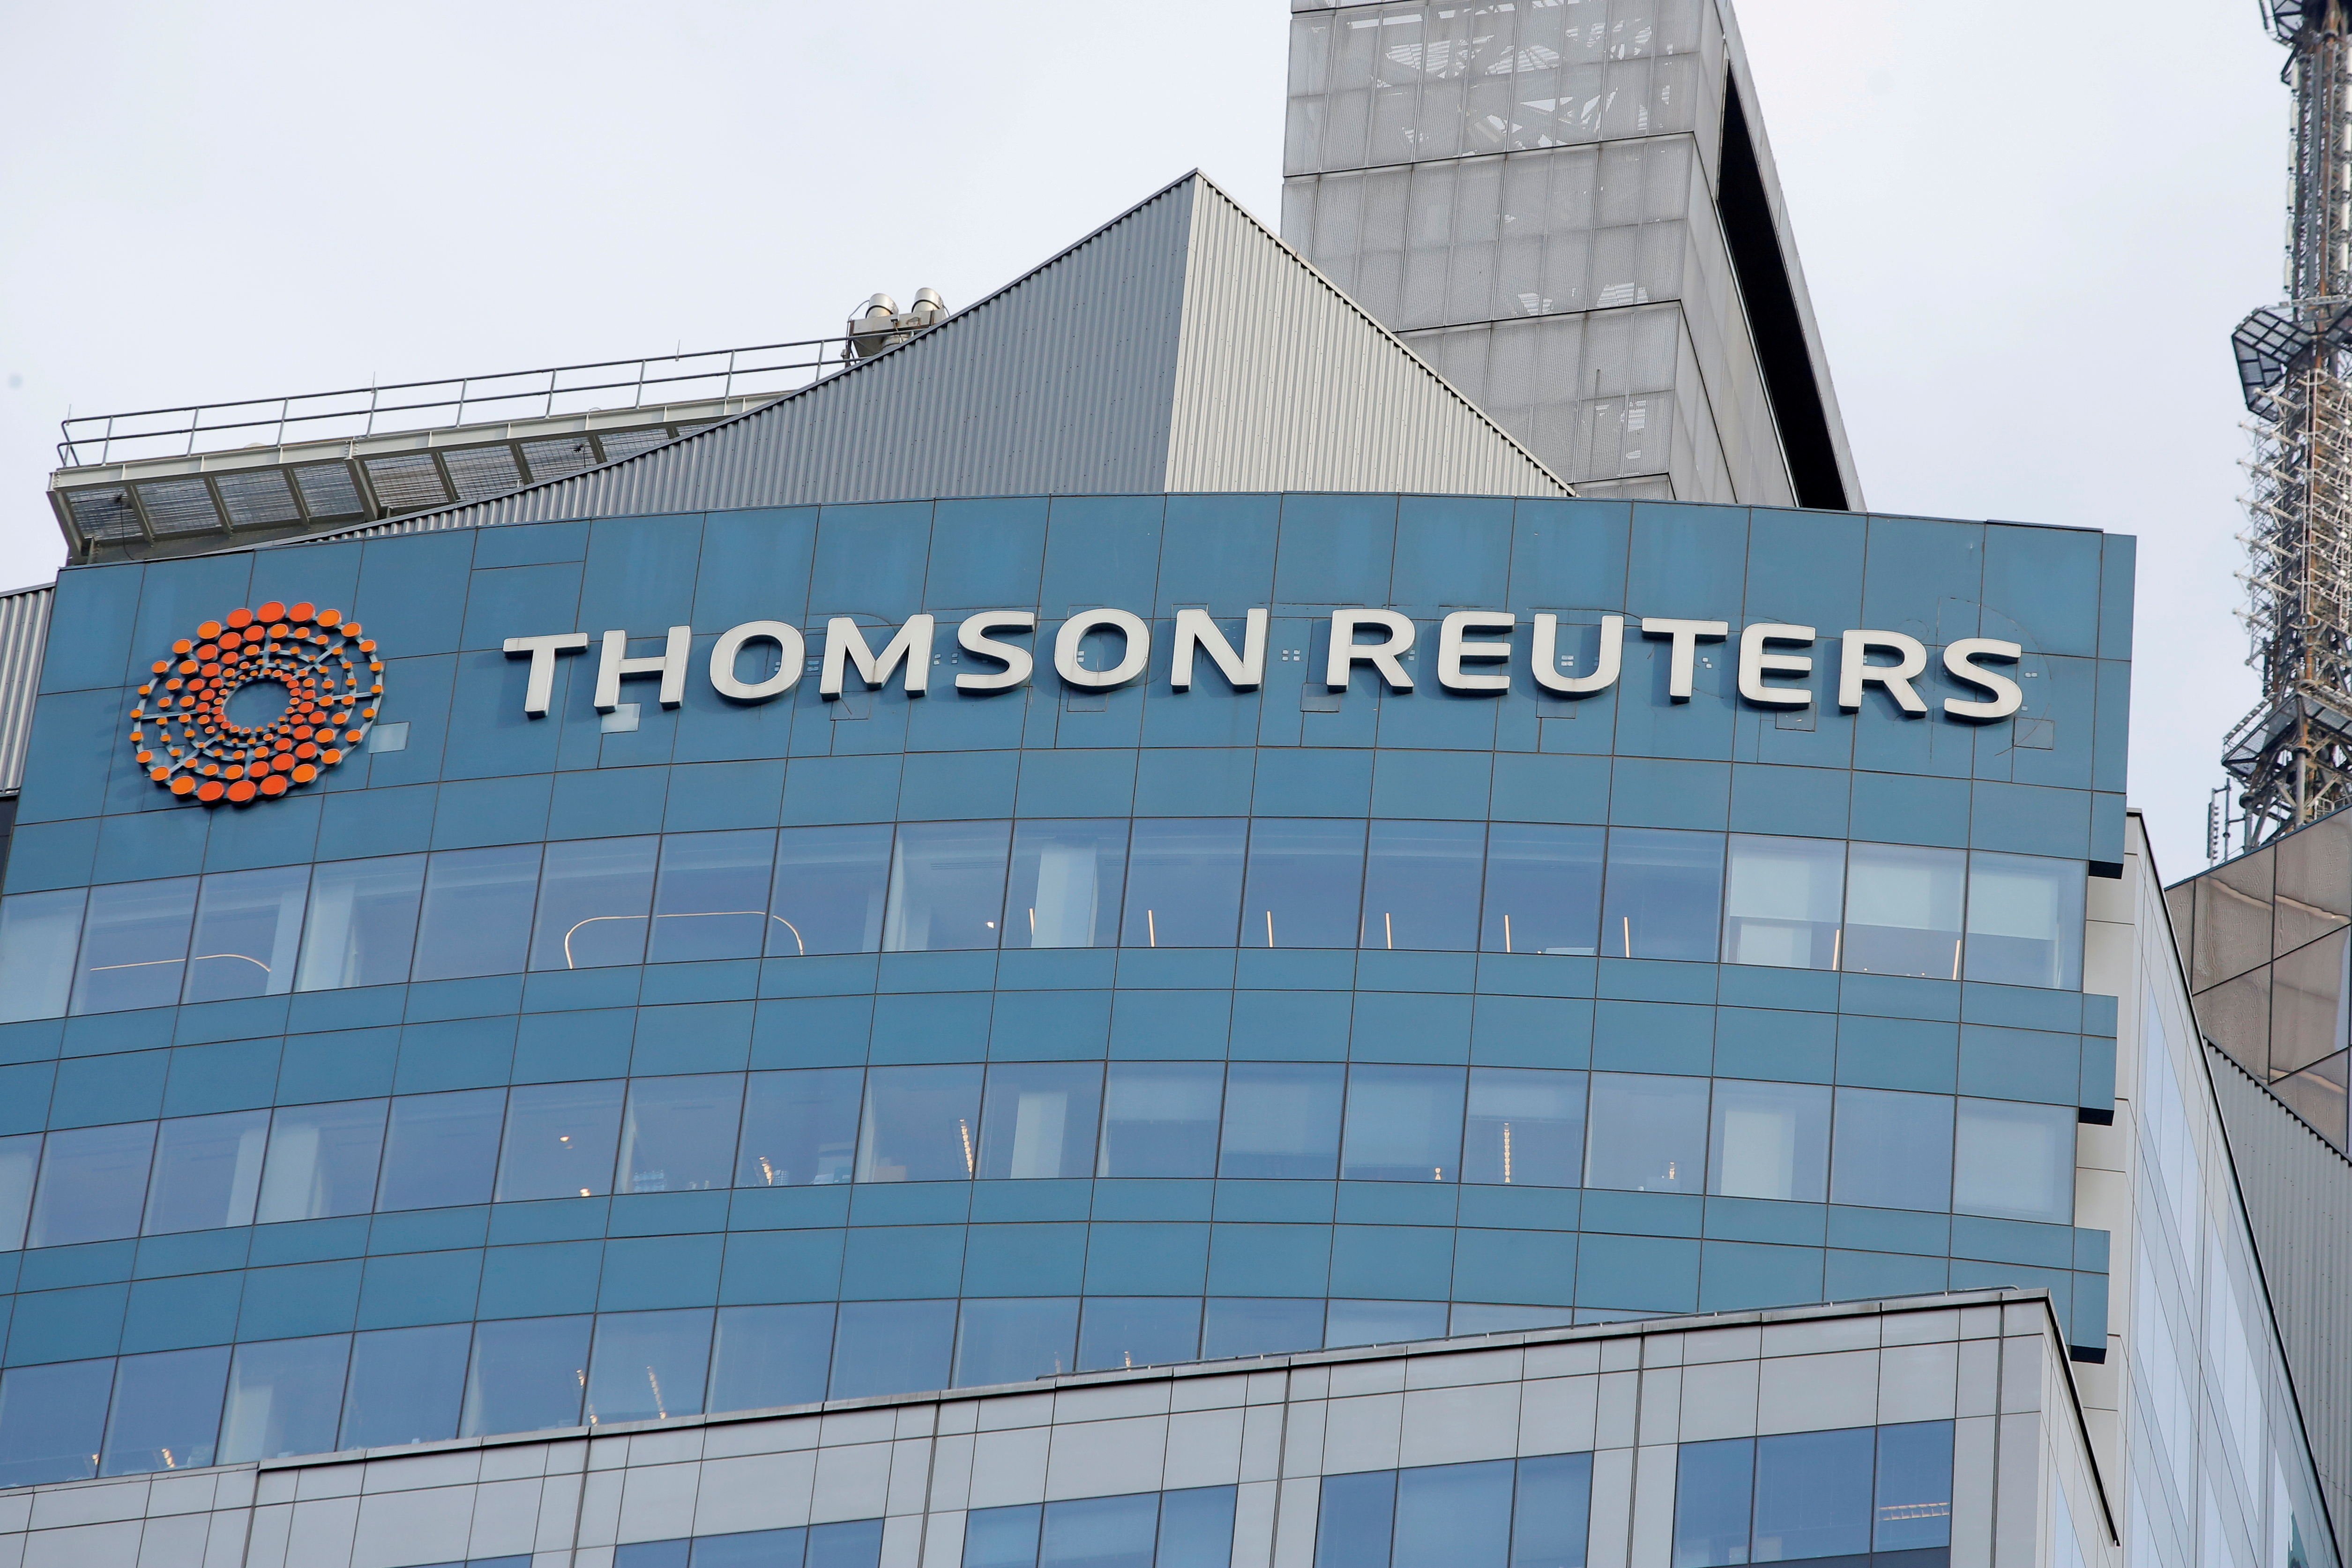 The Thomson Reuters logo is seen on the company building in Times Square, New York, U.S., January 30, 2018. REUTERS/Andrew Kelly